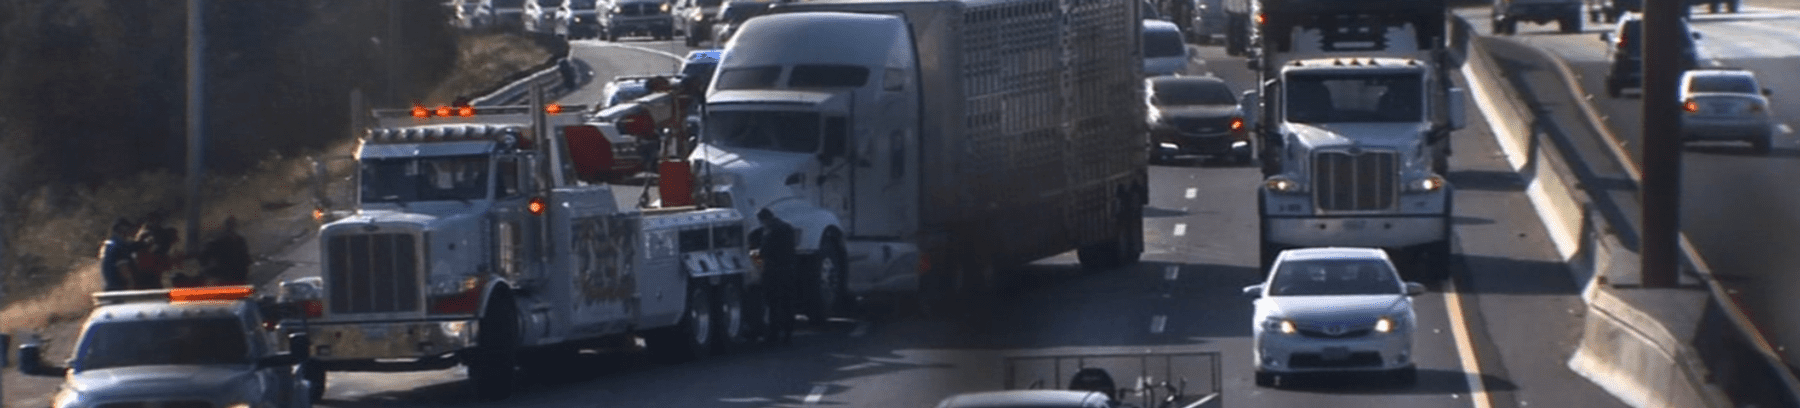 florissant truck accident lawyer; florissant truck accident law firm; florissant truck accident lawsuit